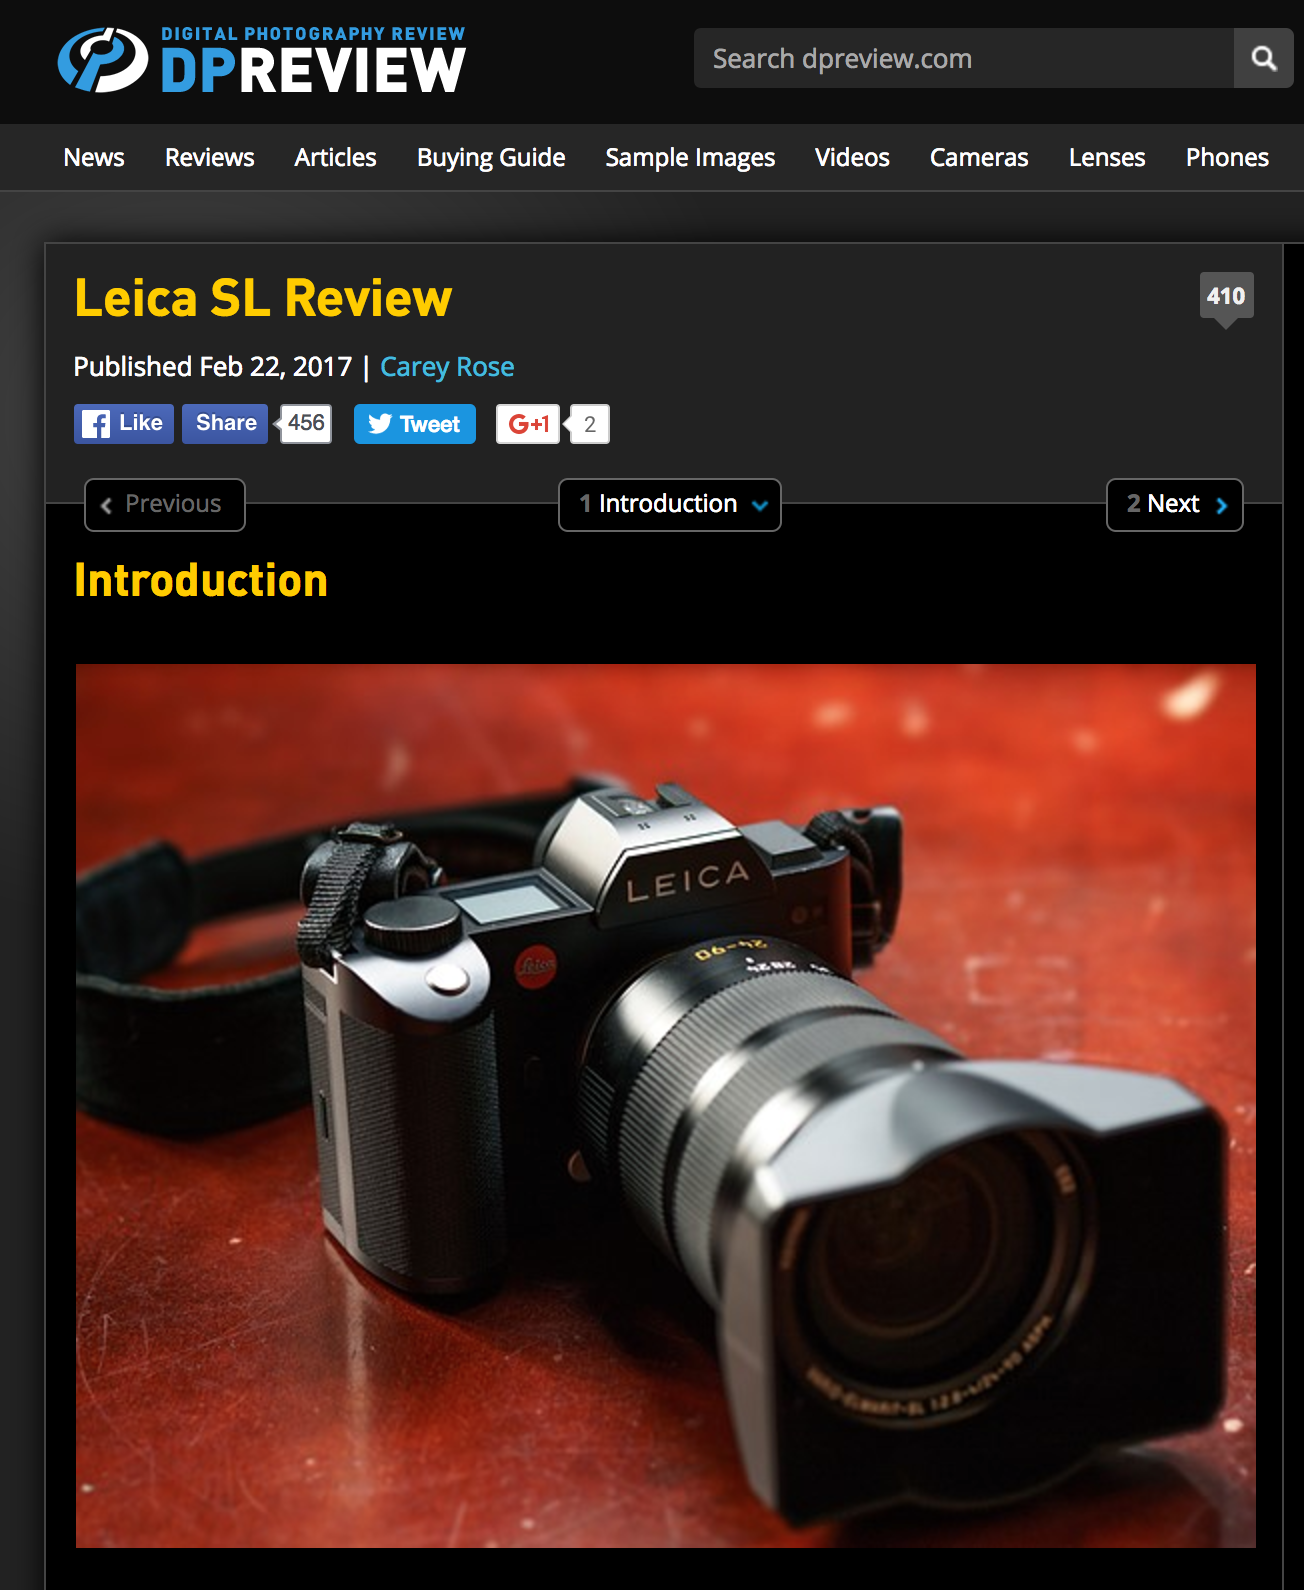 Dpreview Leica SL Review - Reviewing in general